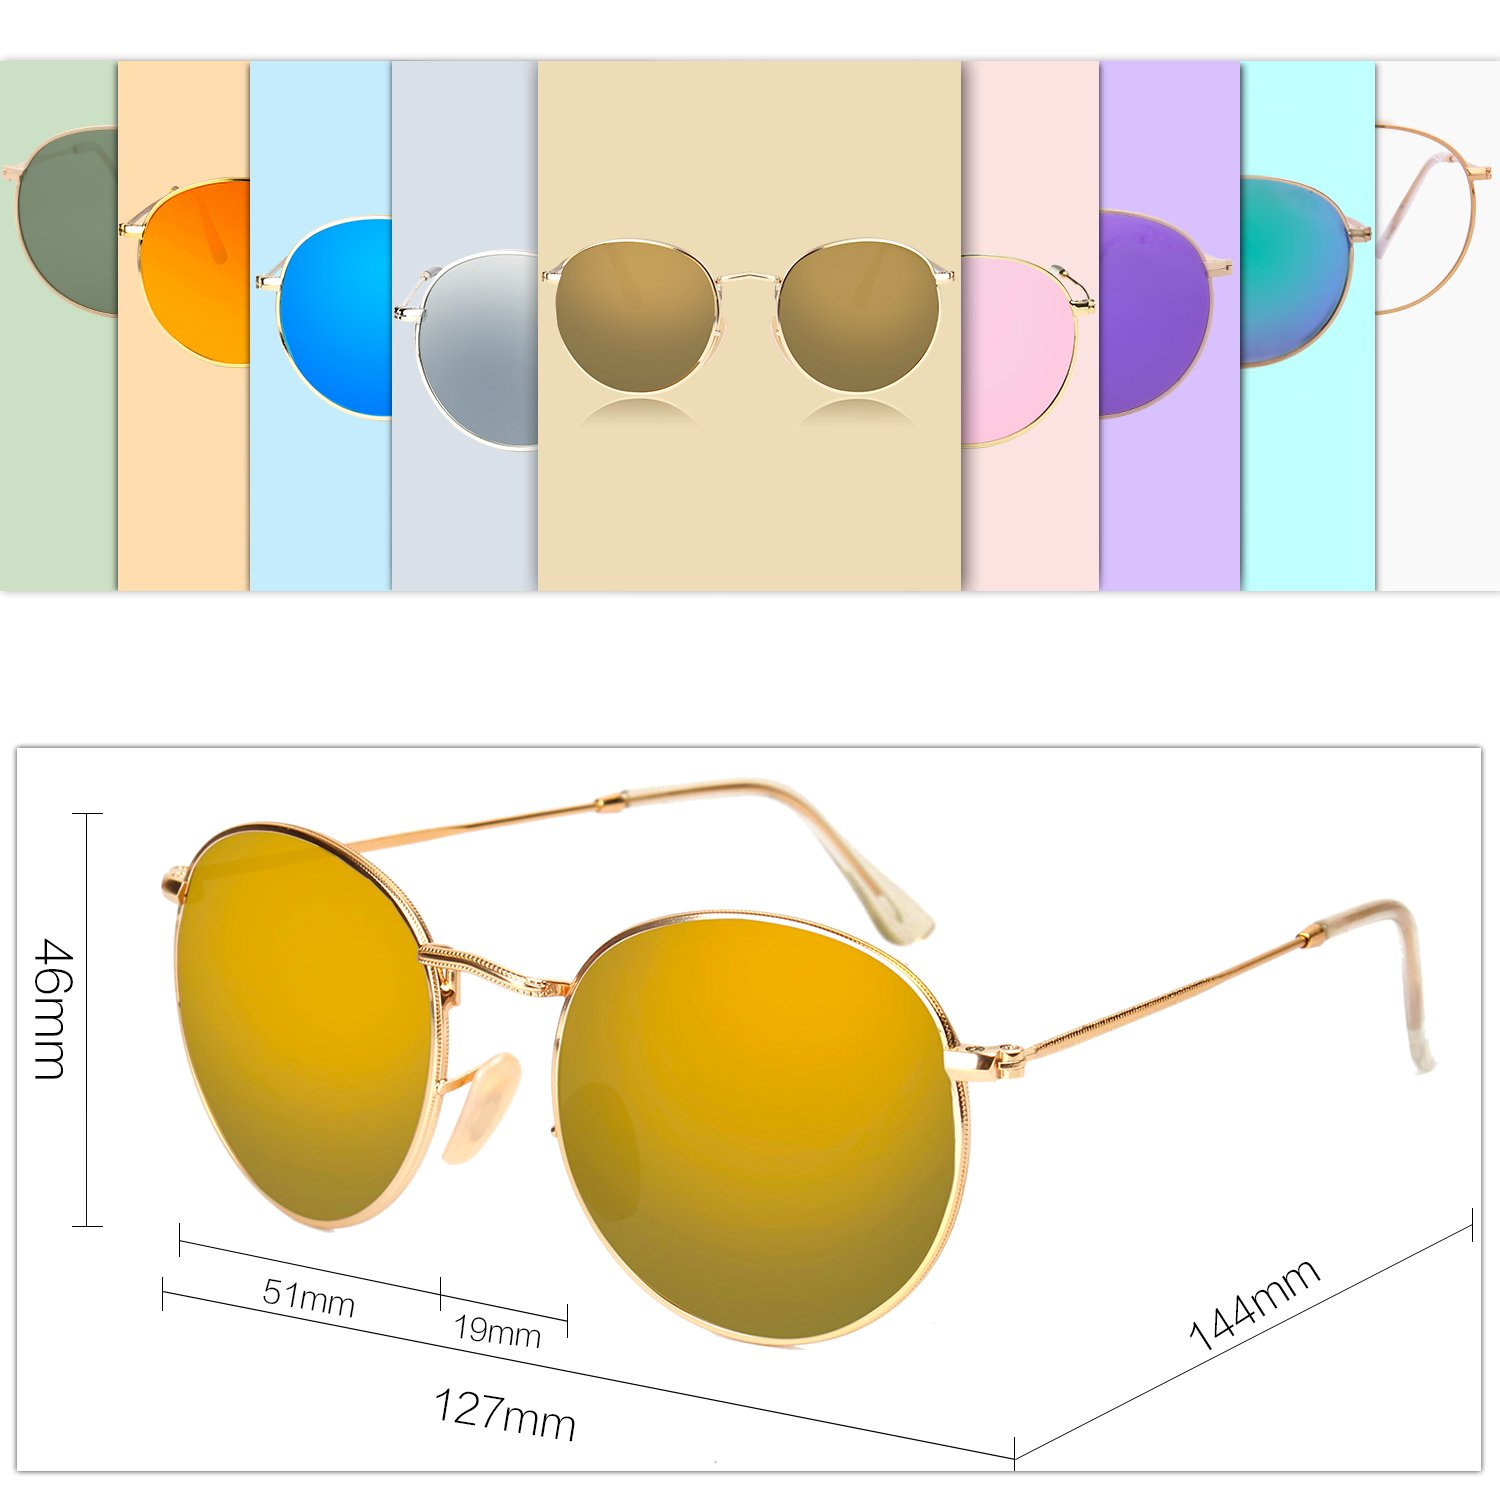 d92bc10f08 SOJOS Small Round Polarized Sunglasses Mirrored Lens Unisex Glasses SJ1014  3447 with Gold Frame Gold Mirrored Lens - SJ1014C2   Sunglasses   Clothing